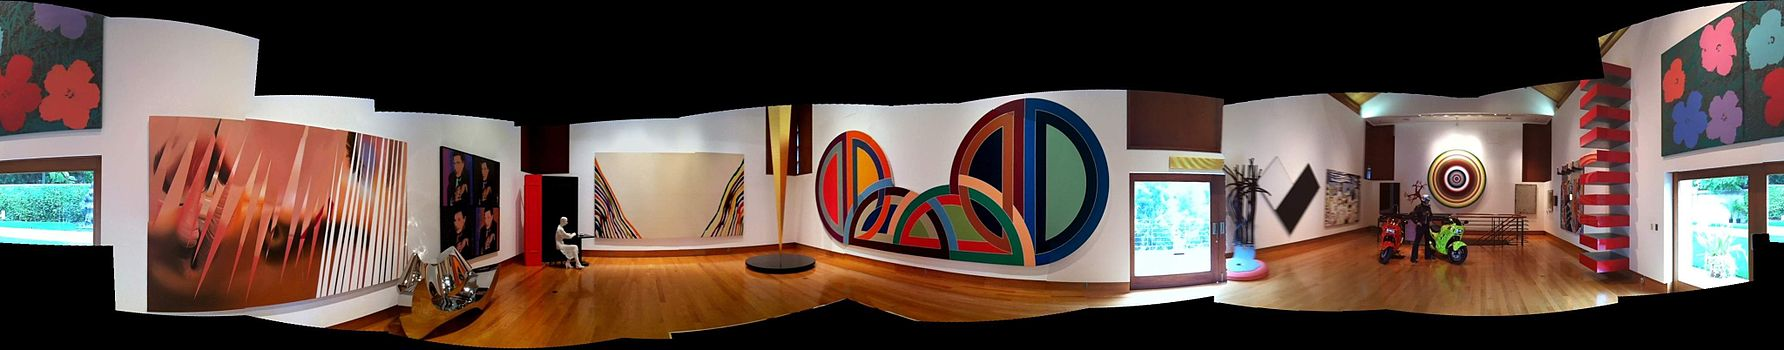 Works on display at the Frederick R. Weisman Art Foundation